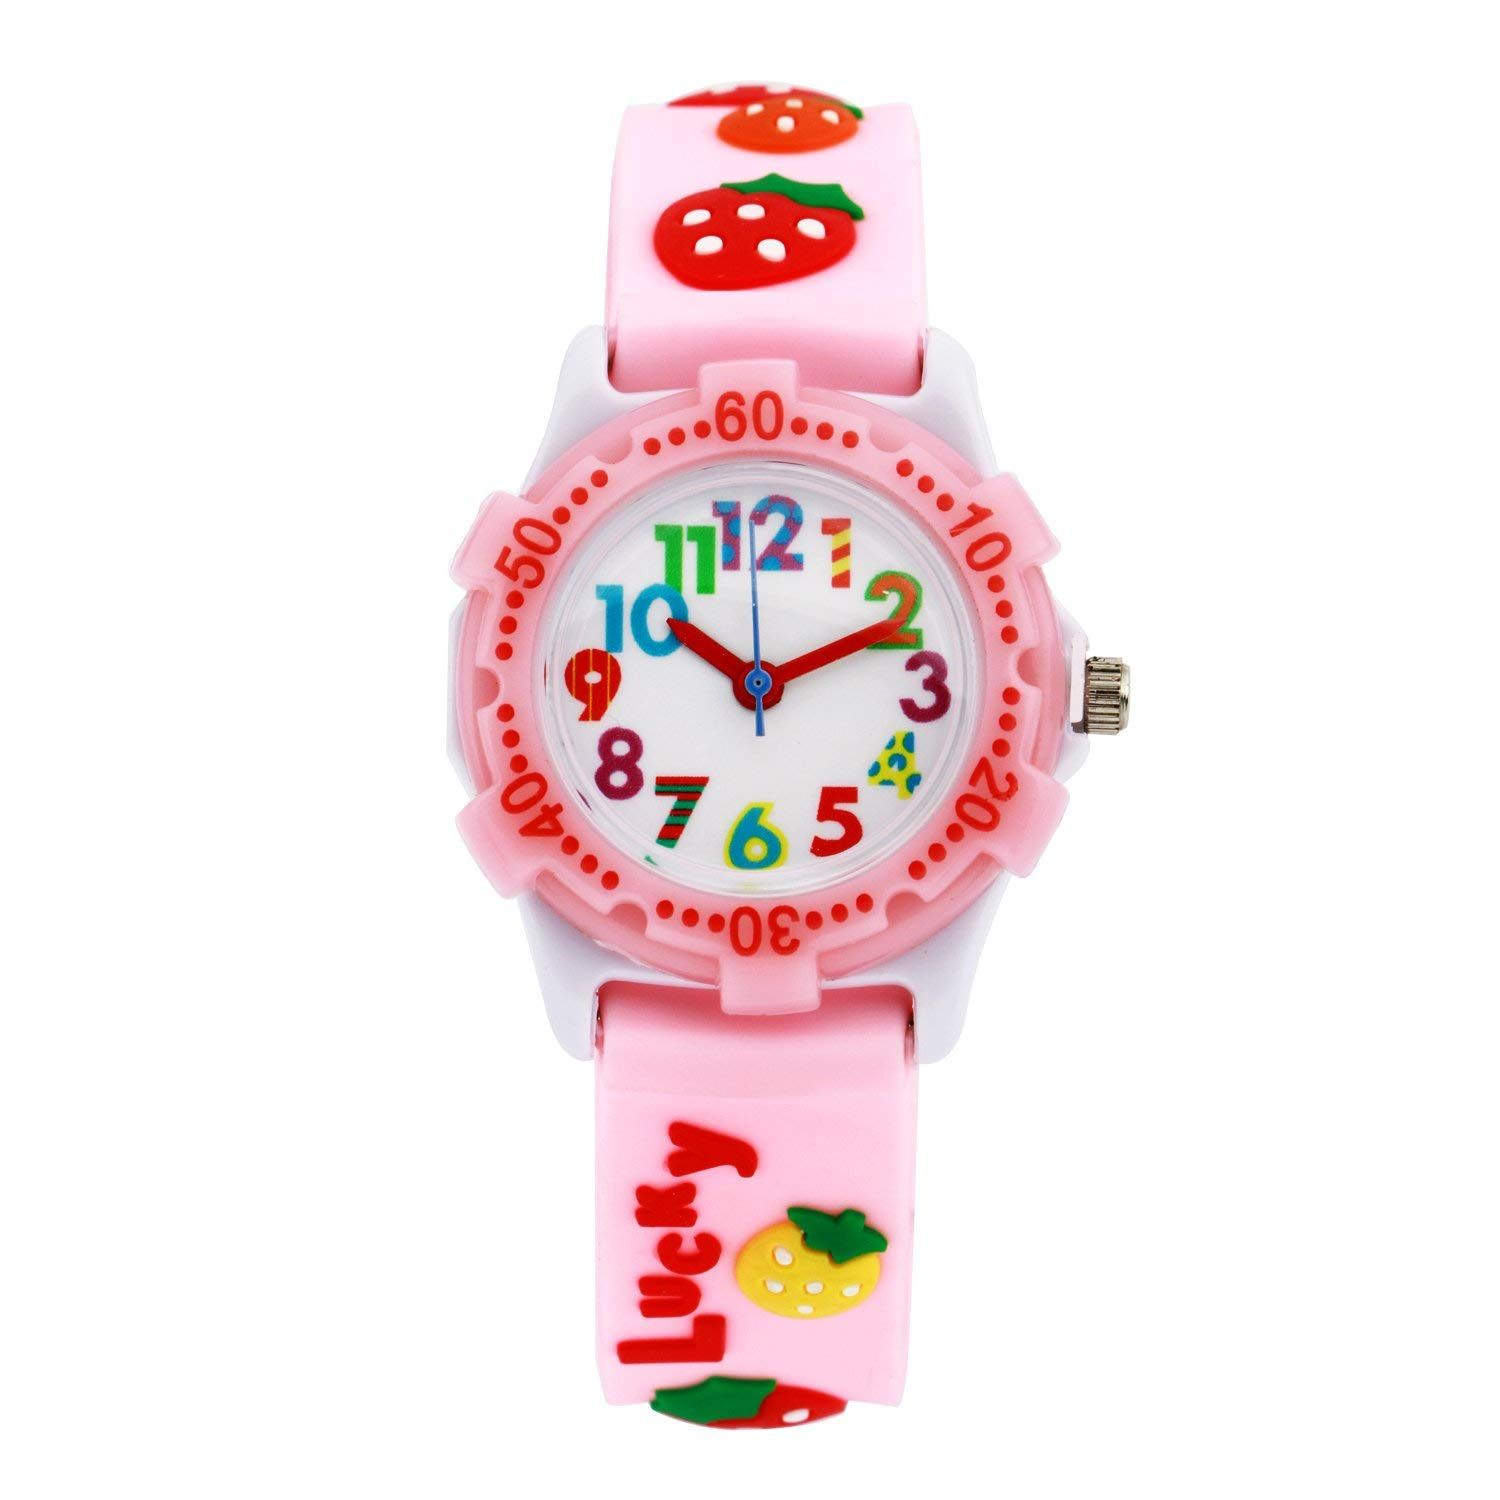 Watches 2018 Fashion Small Children Watch Kids Girls Boys Clock Child Wristwatch Quartz Steel Watch Wrist For Girl Boy Simple Gifts For Fast Shipping